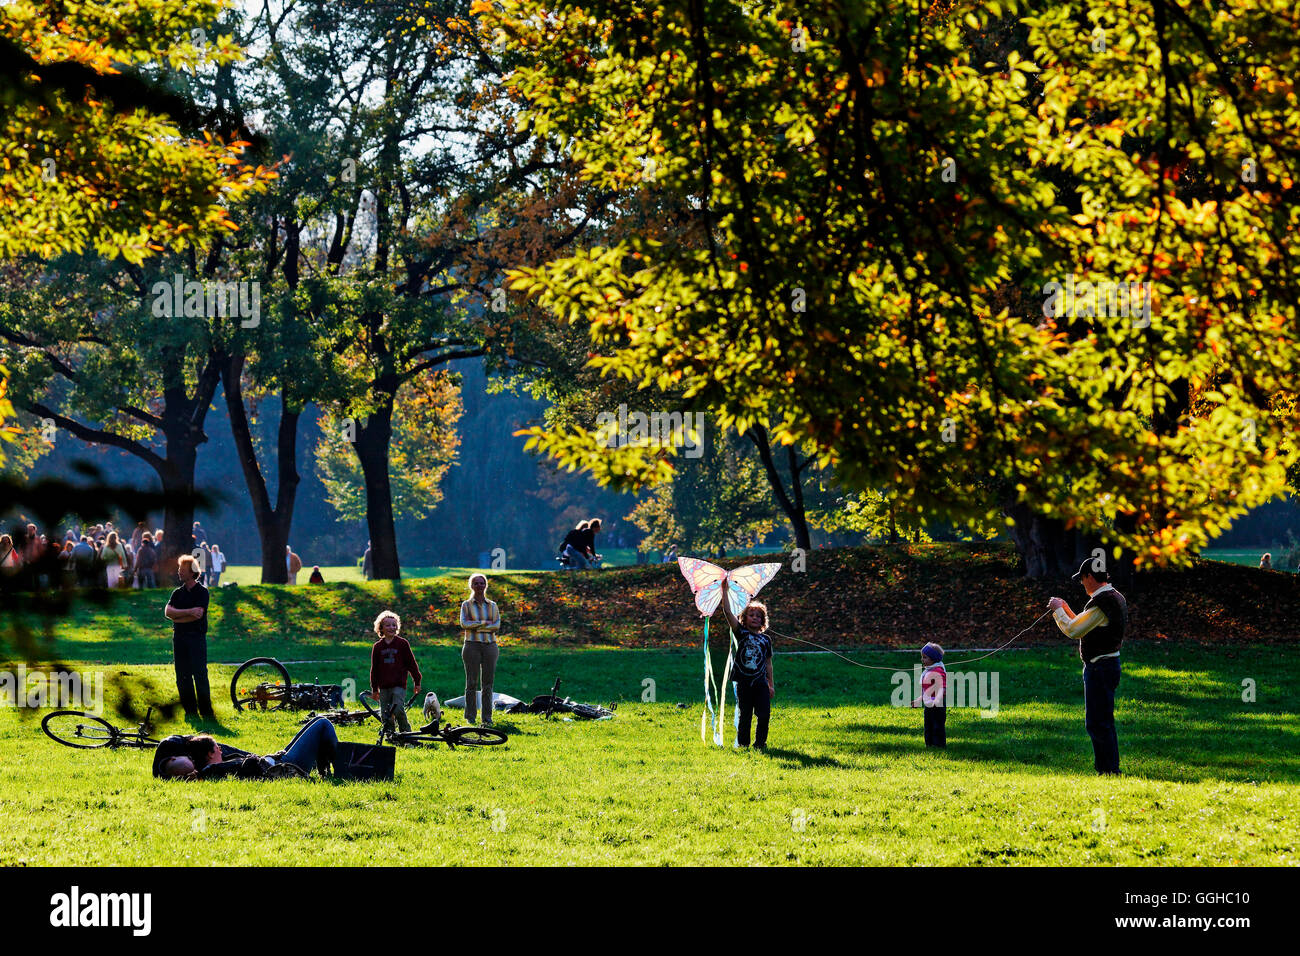 Children flying kites, Englischer Garten, Munich, Upper Bavaria, Bavaria, Germany - Stock Image